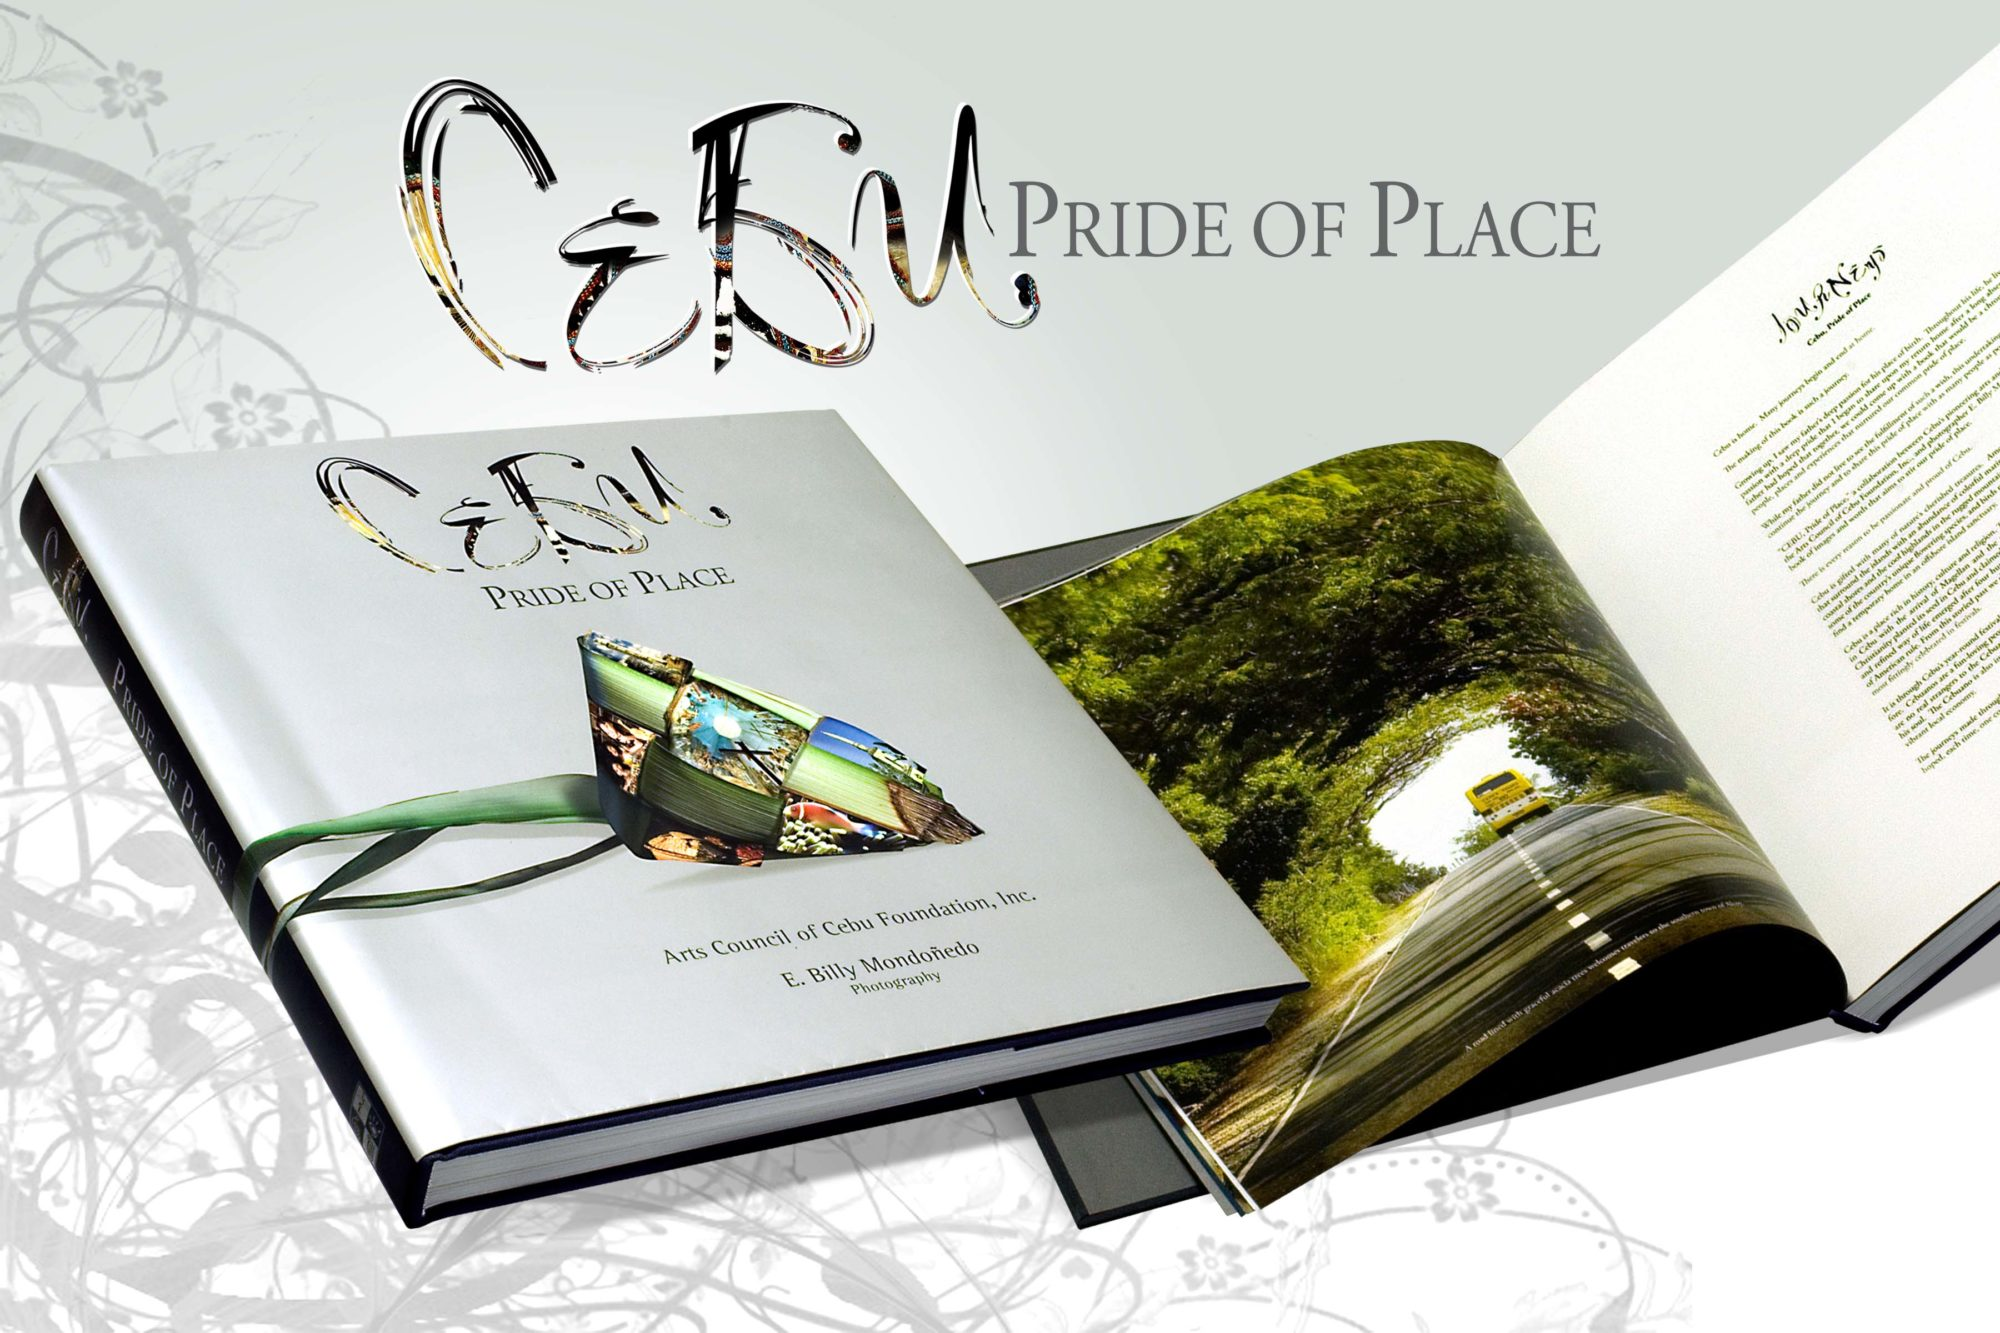 Great coffee table book design